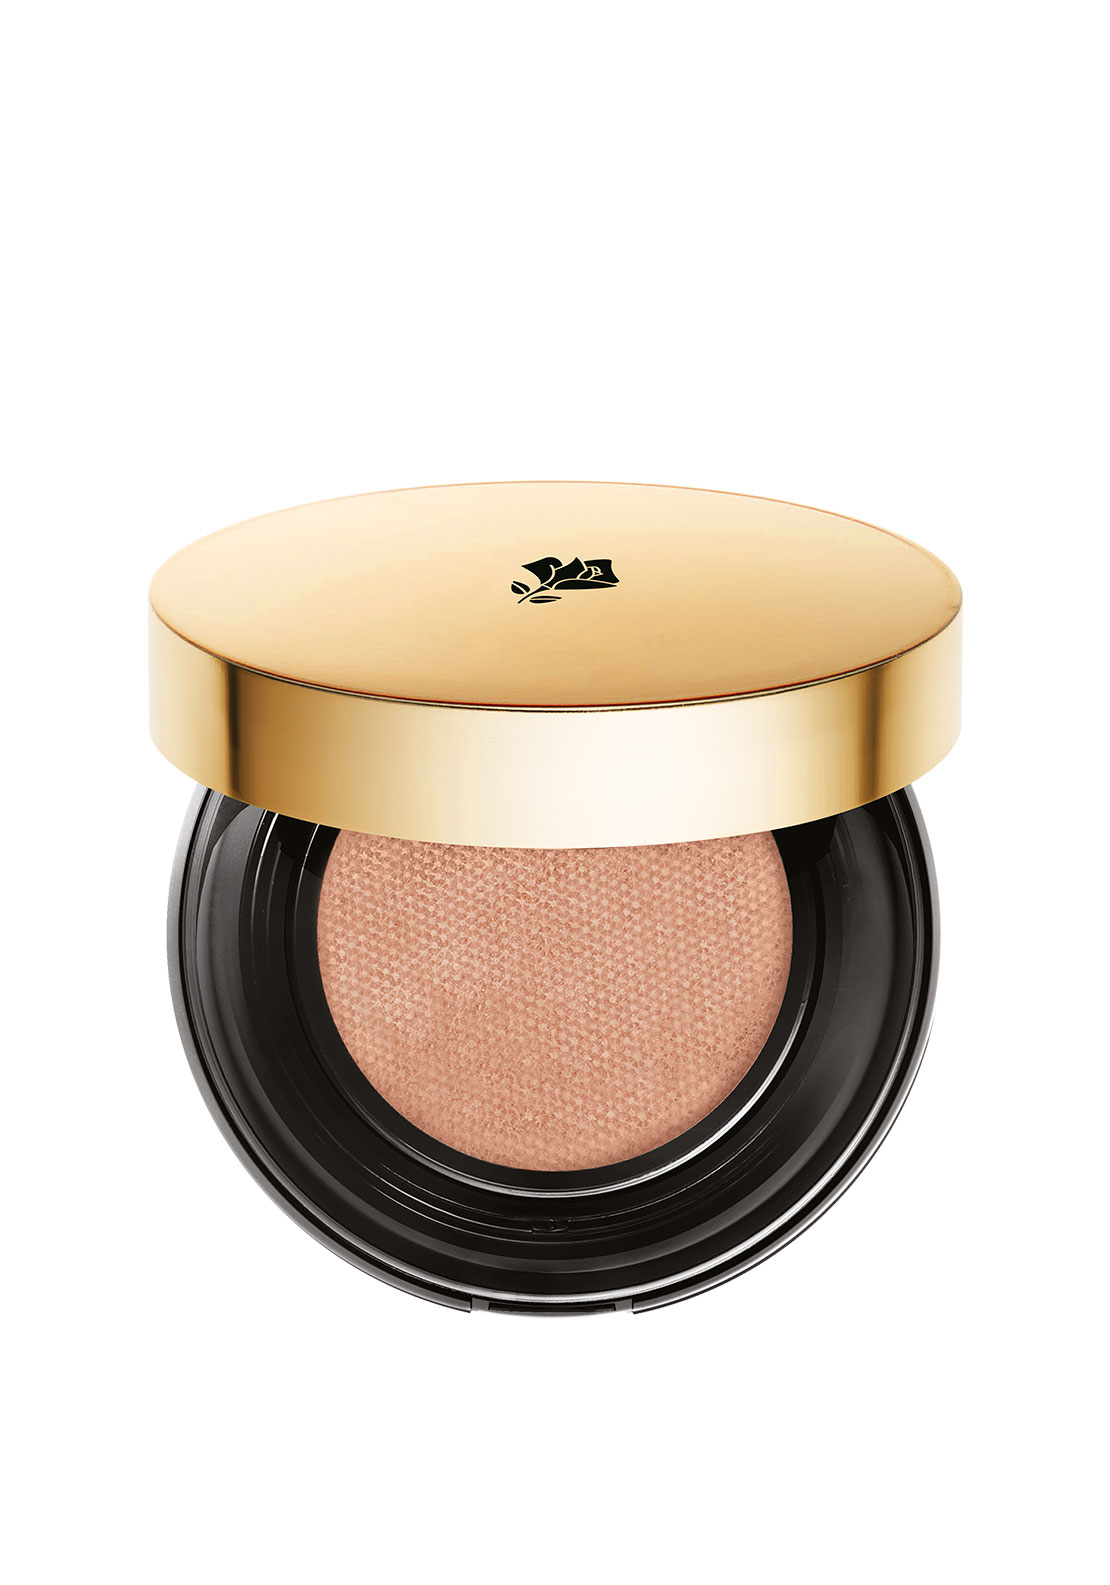 Lancome Teinte Idole Ultra Cushion Compact Foundation Refill, Beige Miel